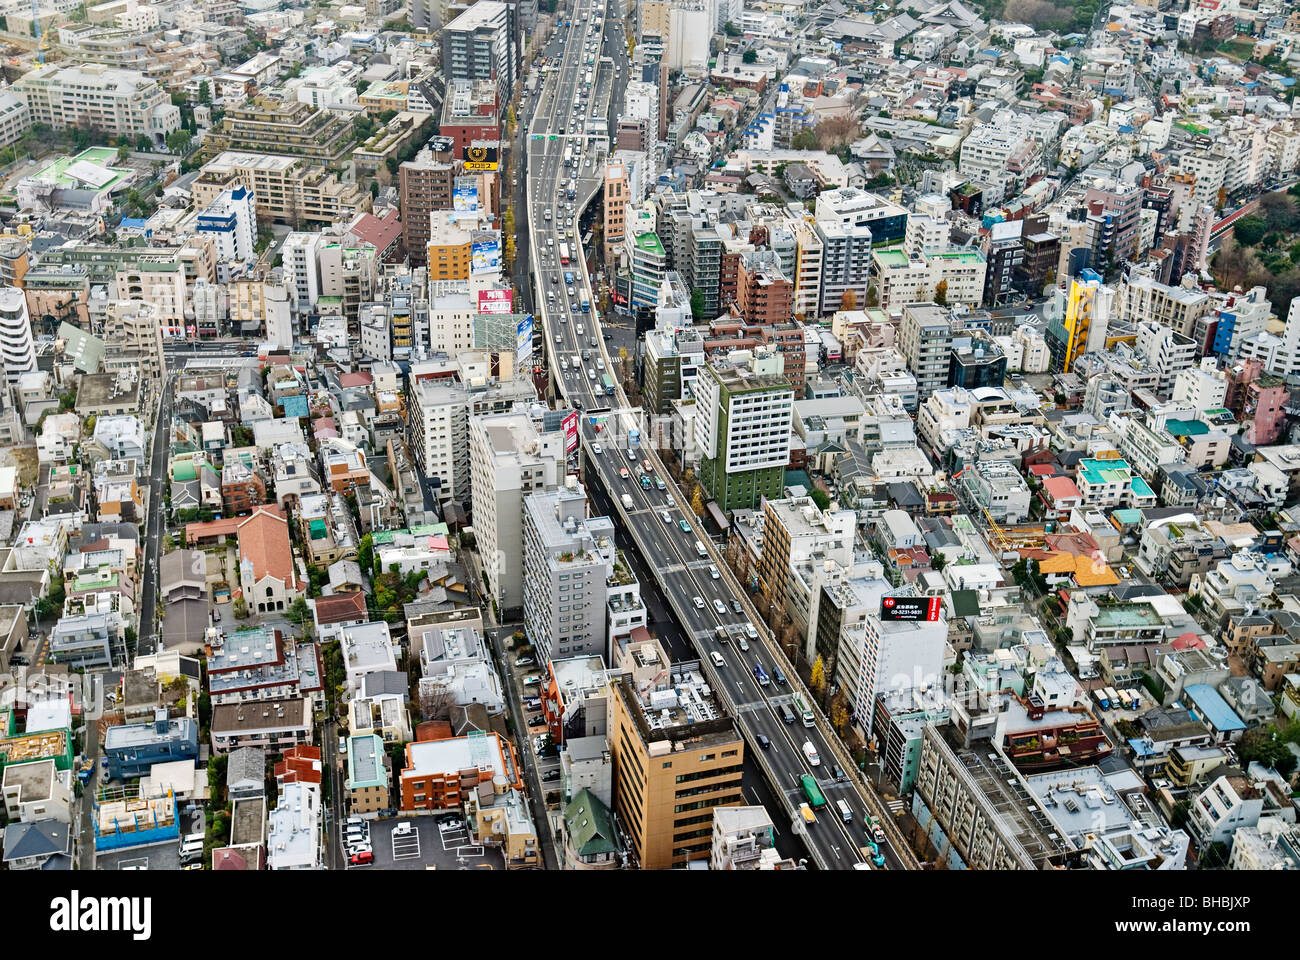 Aerial view of highway and urban sprawl, Tokyo, Japan. - Stock Image